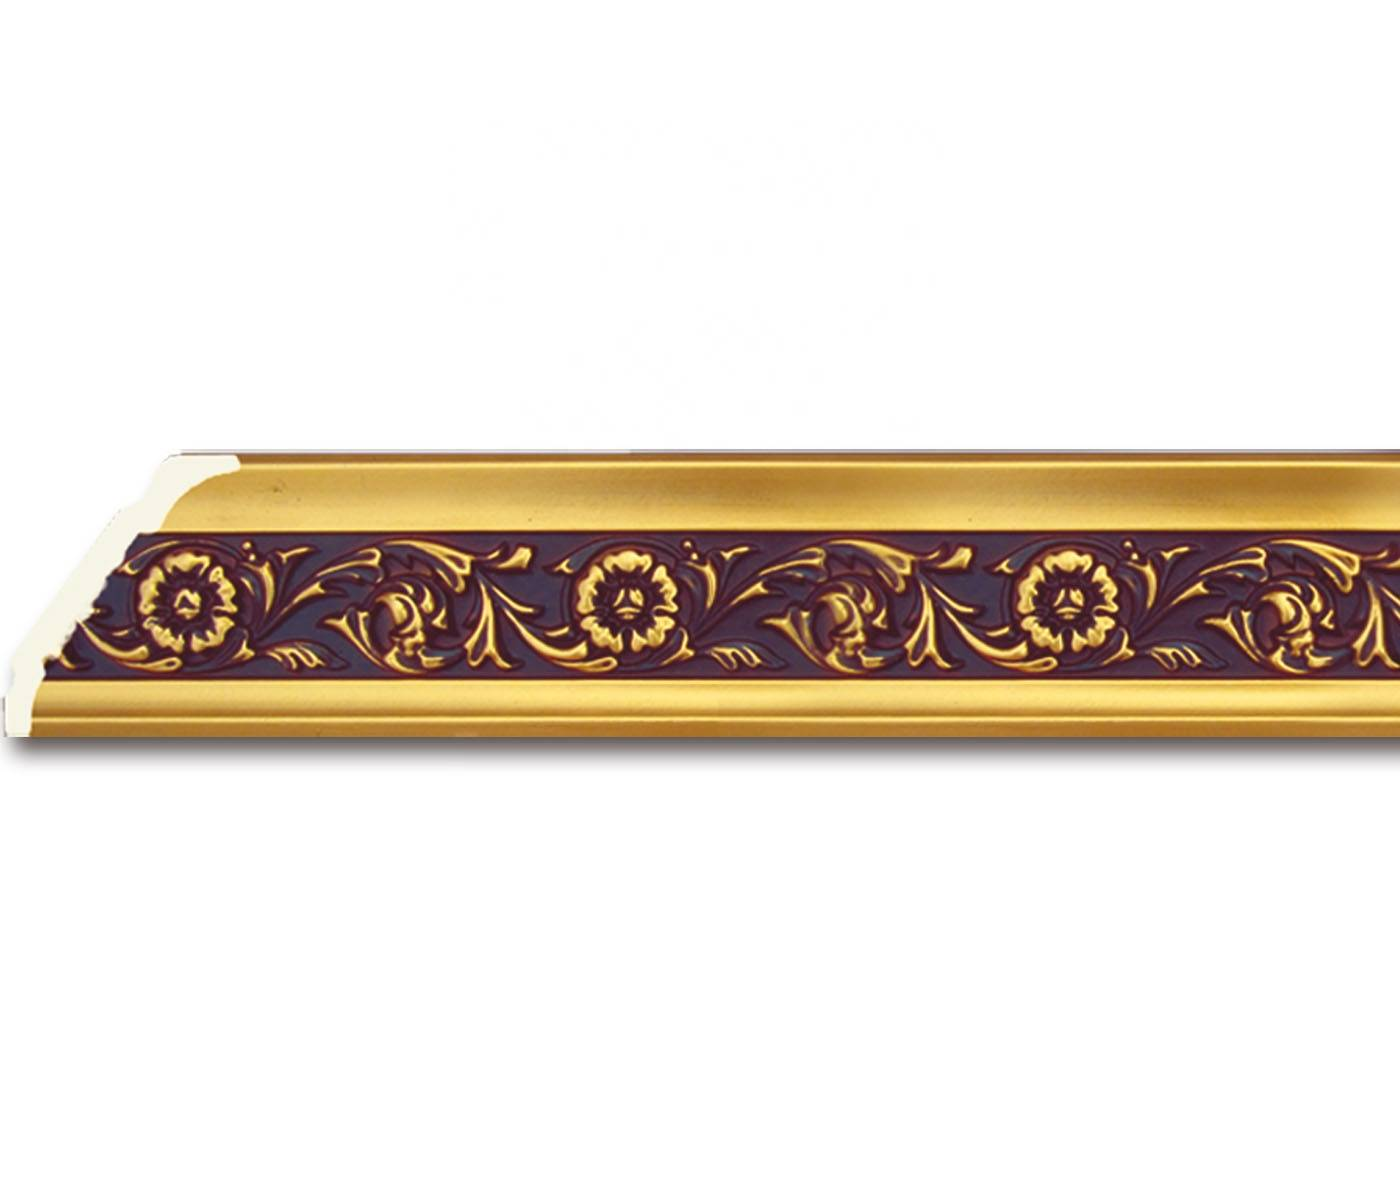 PS Flower Plastic Plain Baseboard & Crown Molding for Ceiling Wall Decor Frame Molding